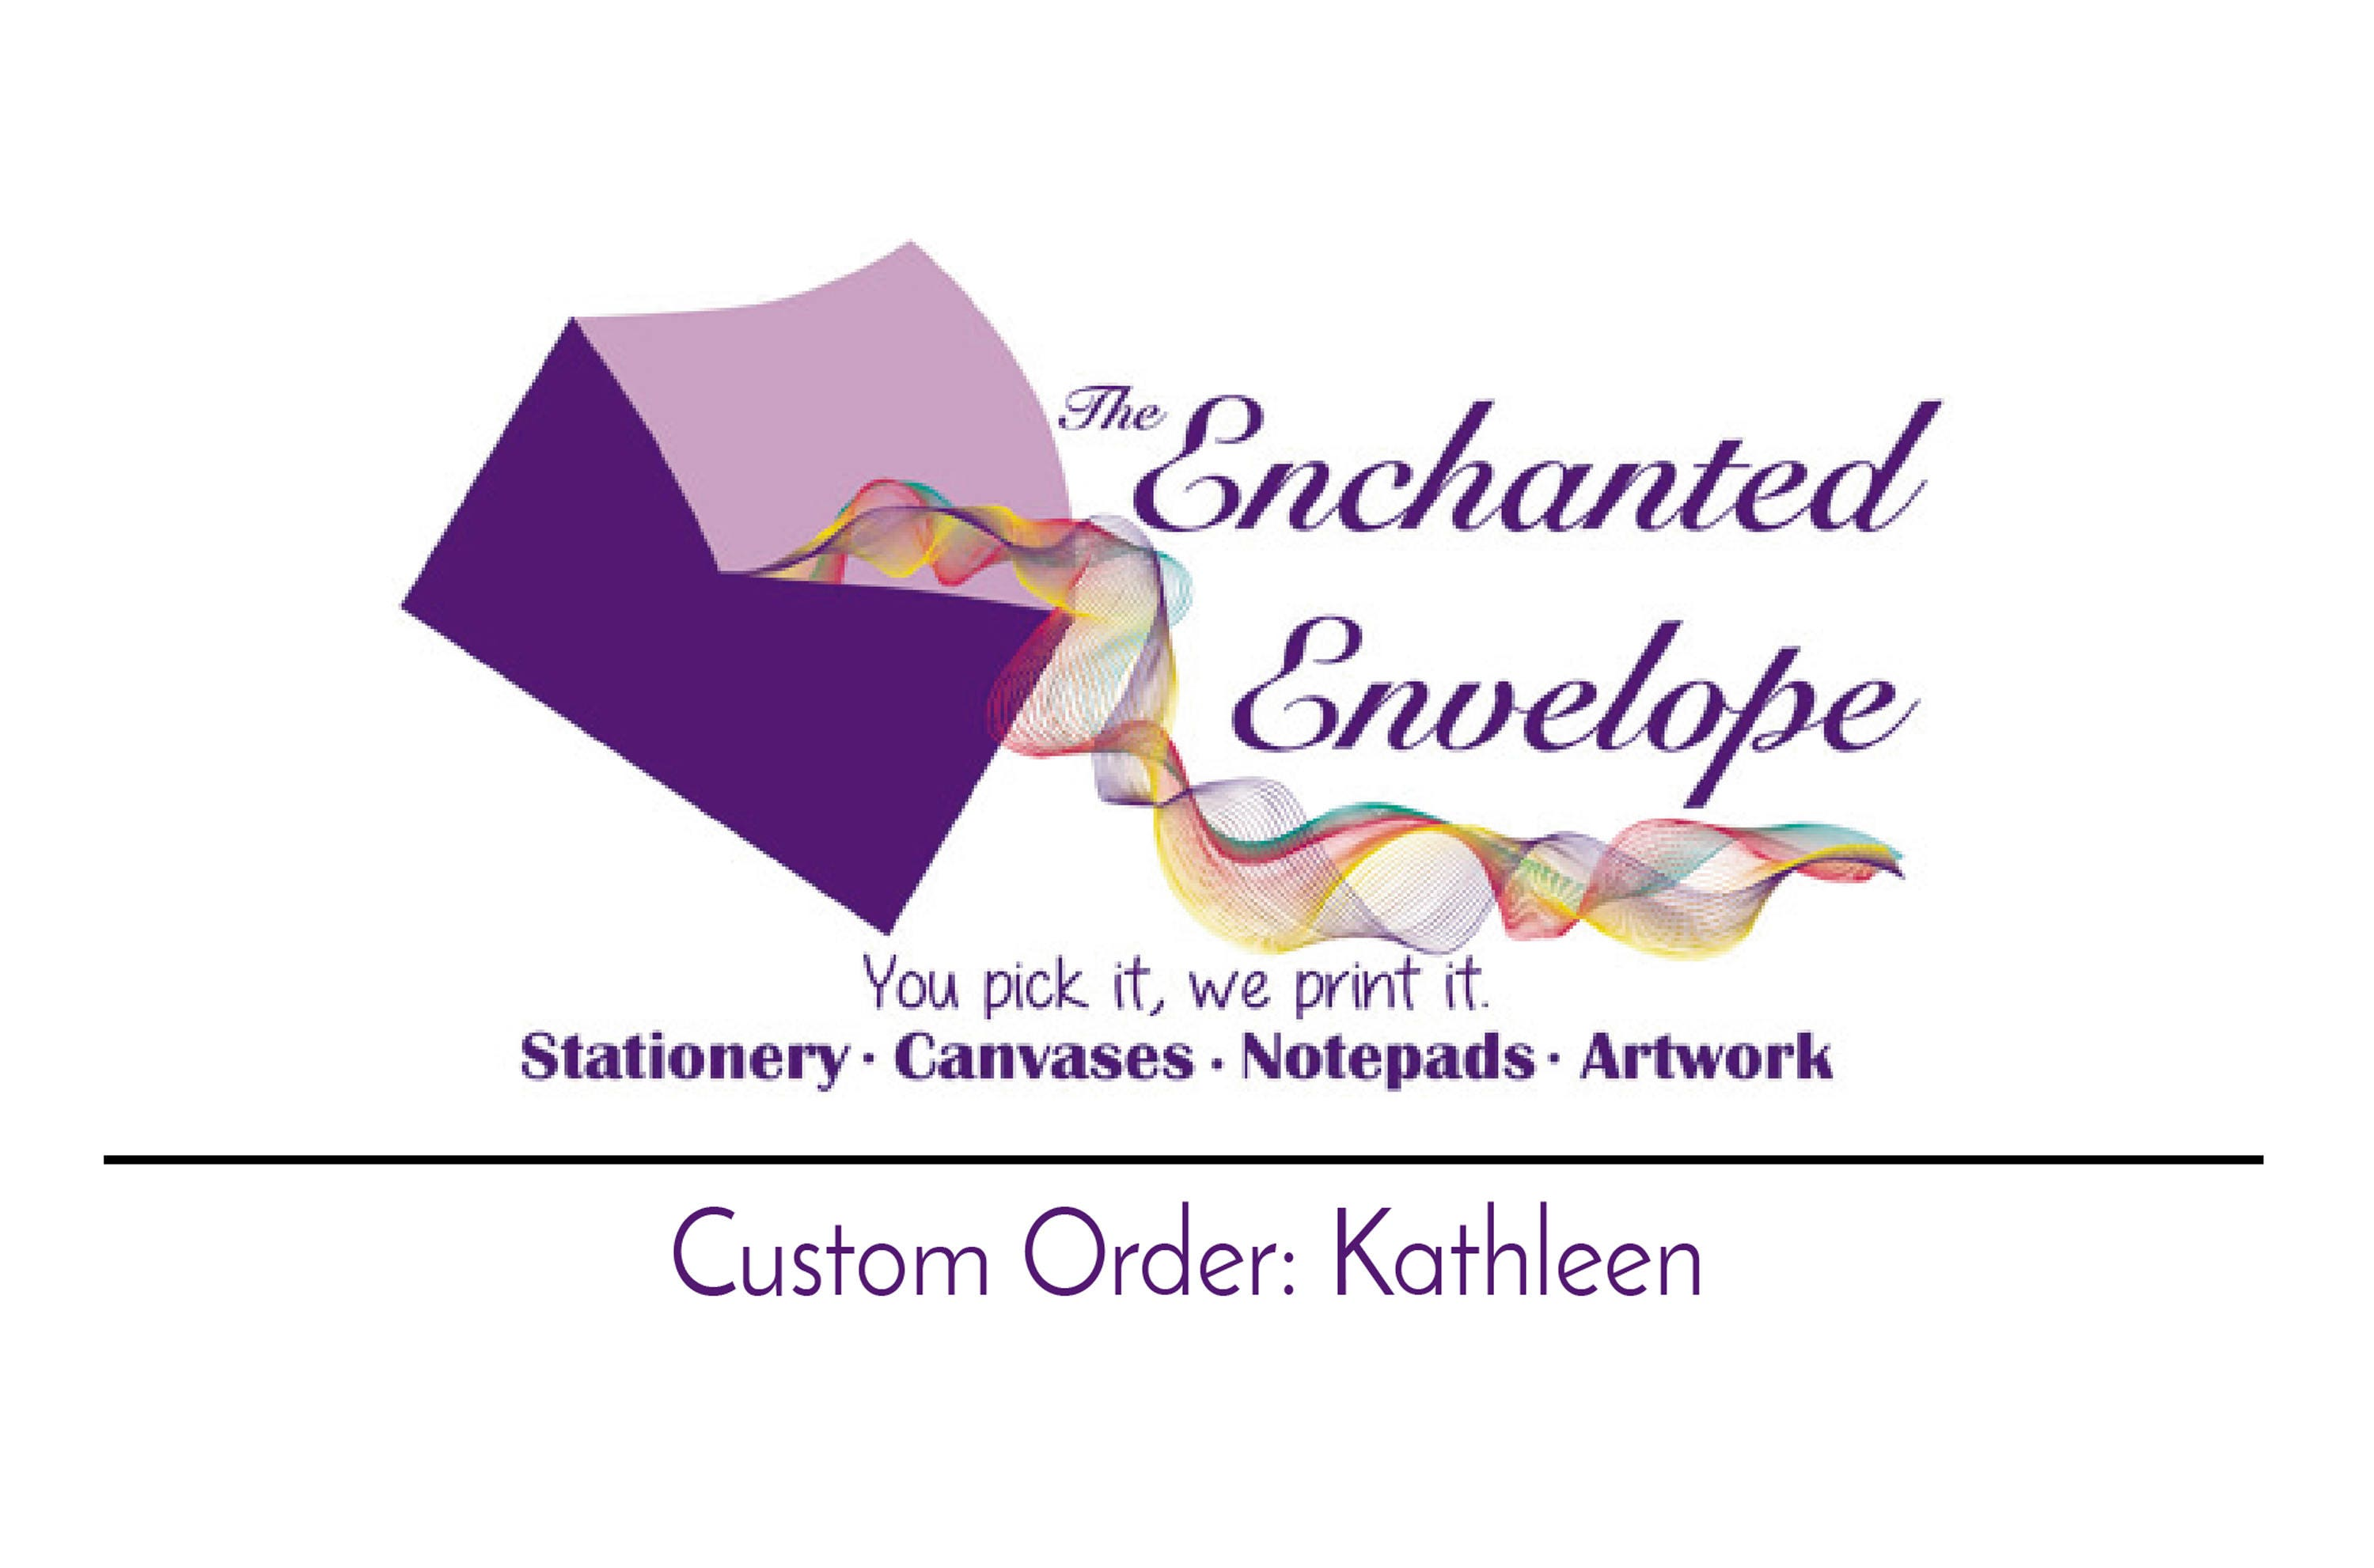 Custom order kathleen square business cards custom business cards custom order kathleen square business cards custom business cards custom printing printed business cards colourmoves